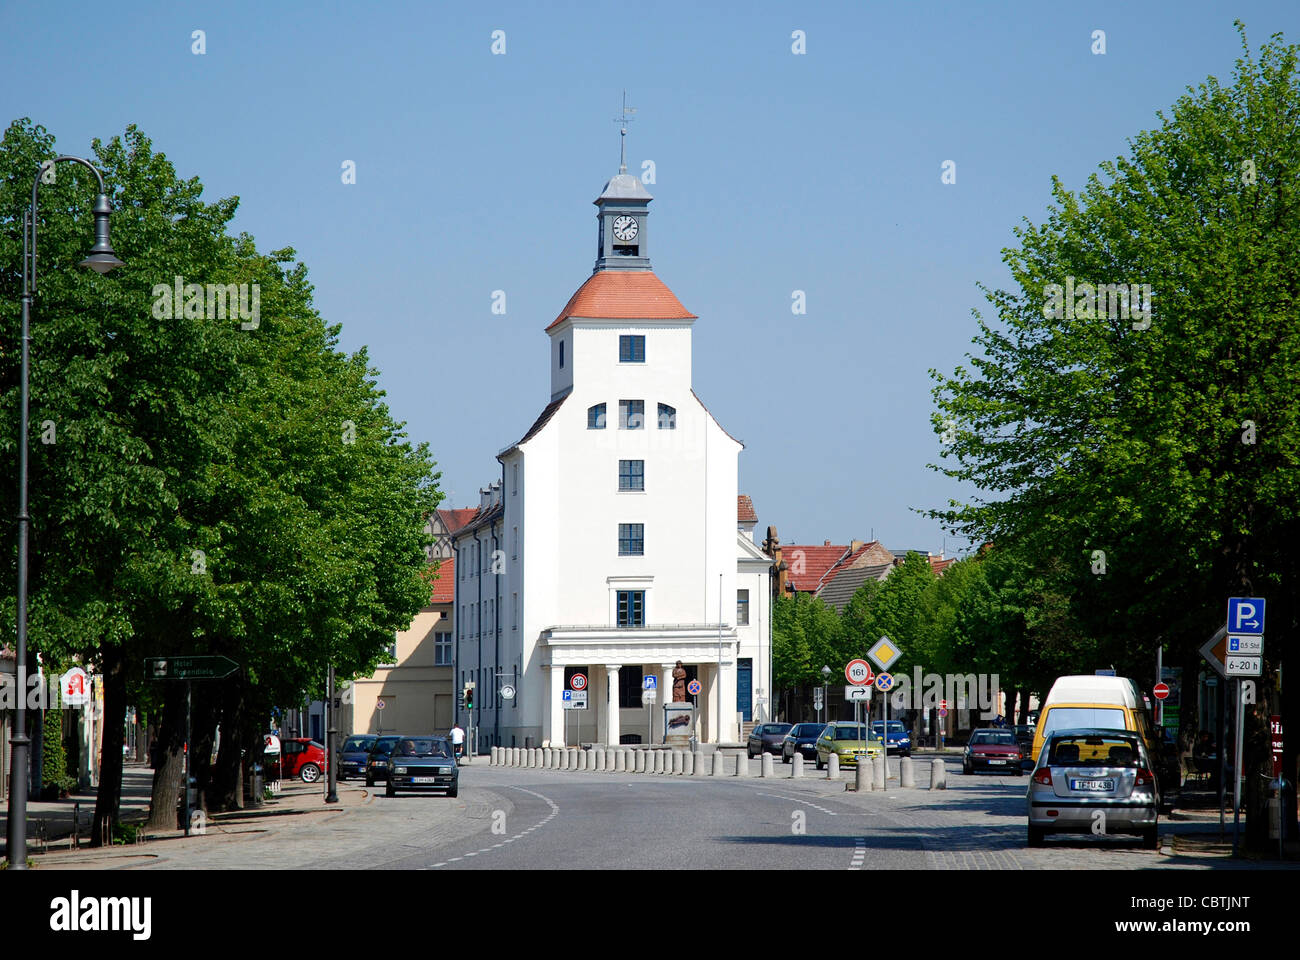 City hall of the town Treuenbrietzen in the Flaeming. - Stock Image